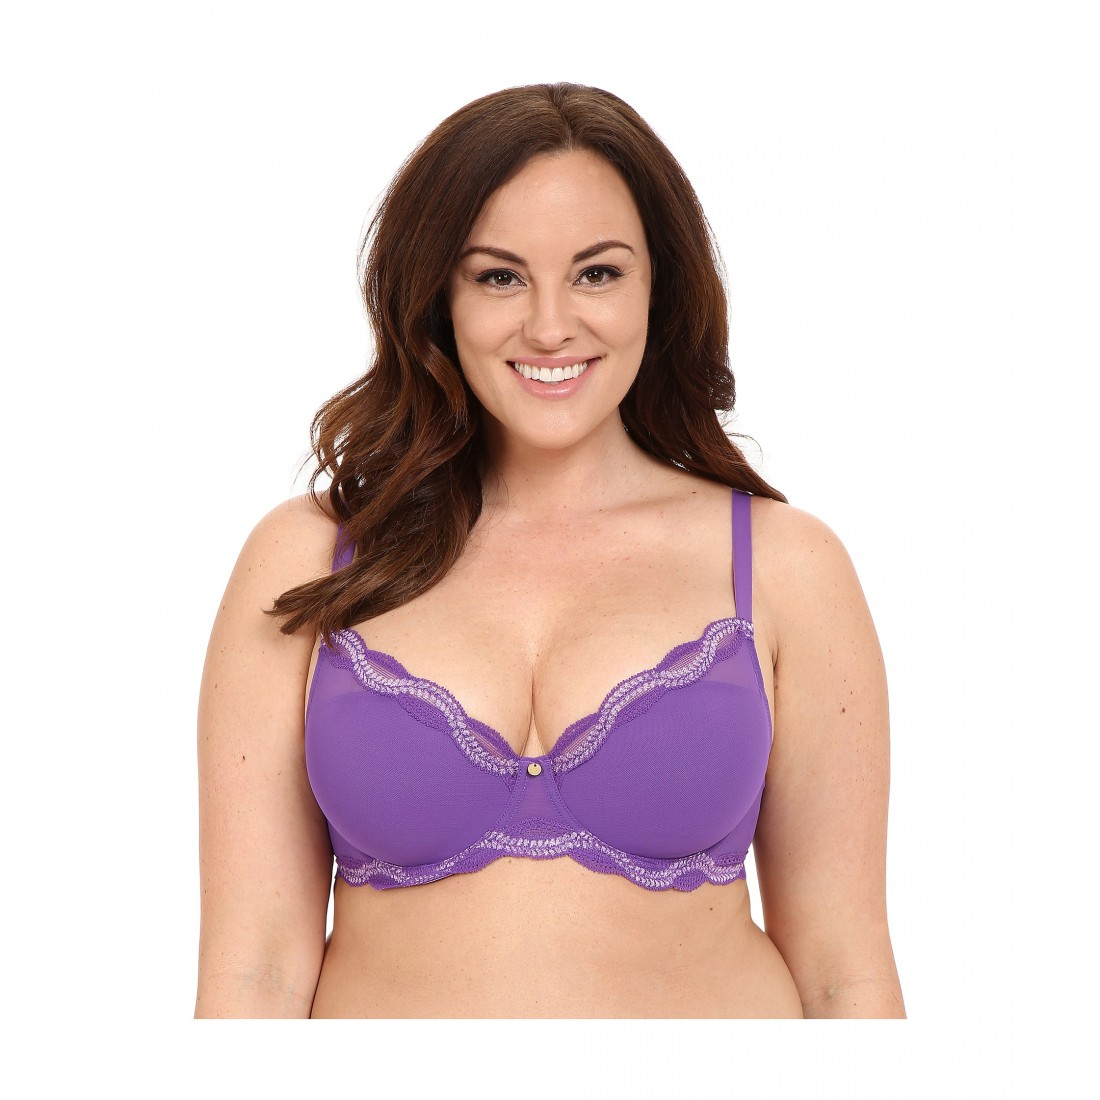 5610fb915 Natori Pure Allure Full Figure Contour Underwire Bra 736099 6PM8535323  Purple Soft Lilac